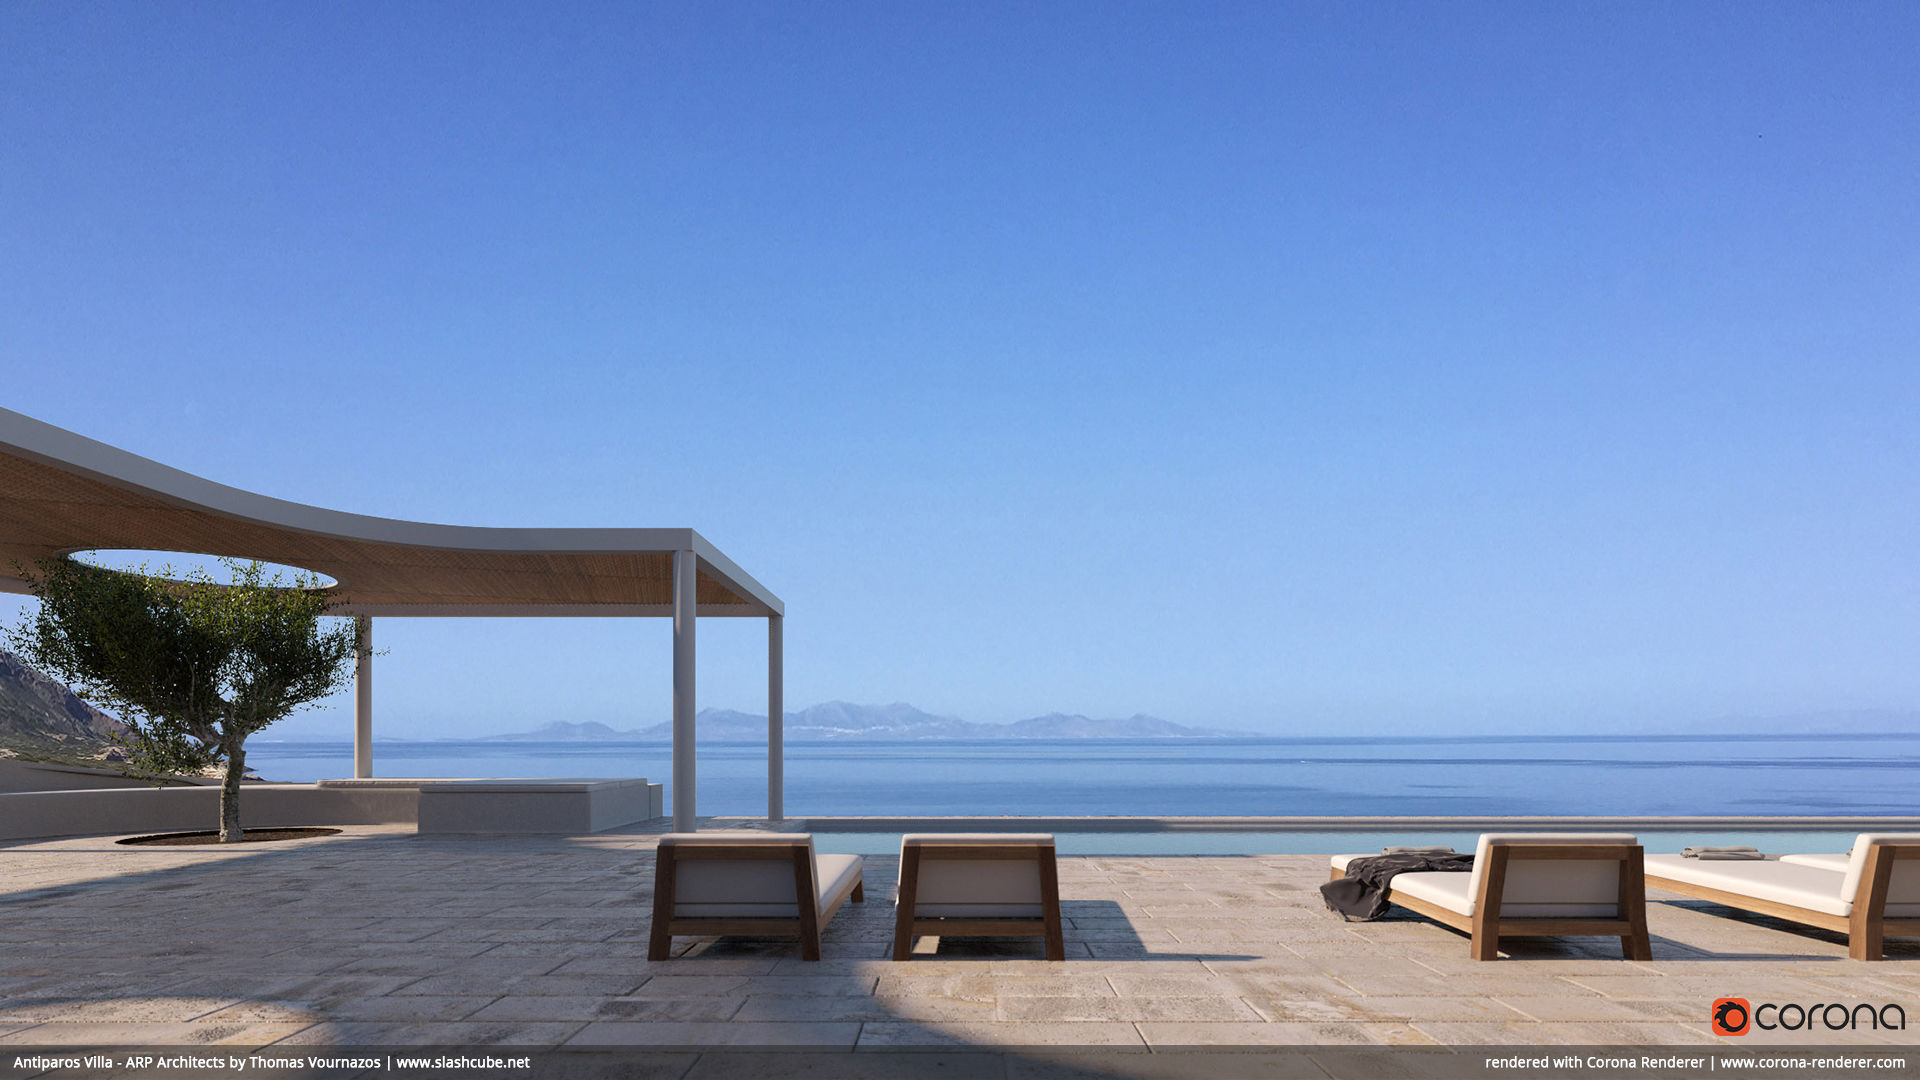 Antiparos Villa - ARP Architects by Thomas Vournazos